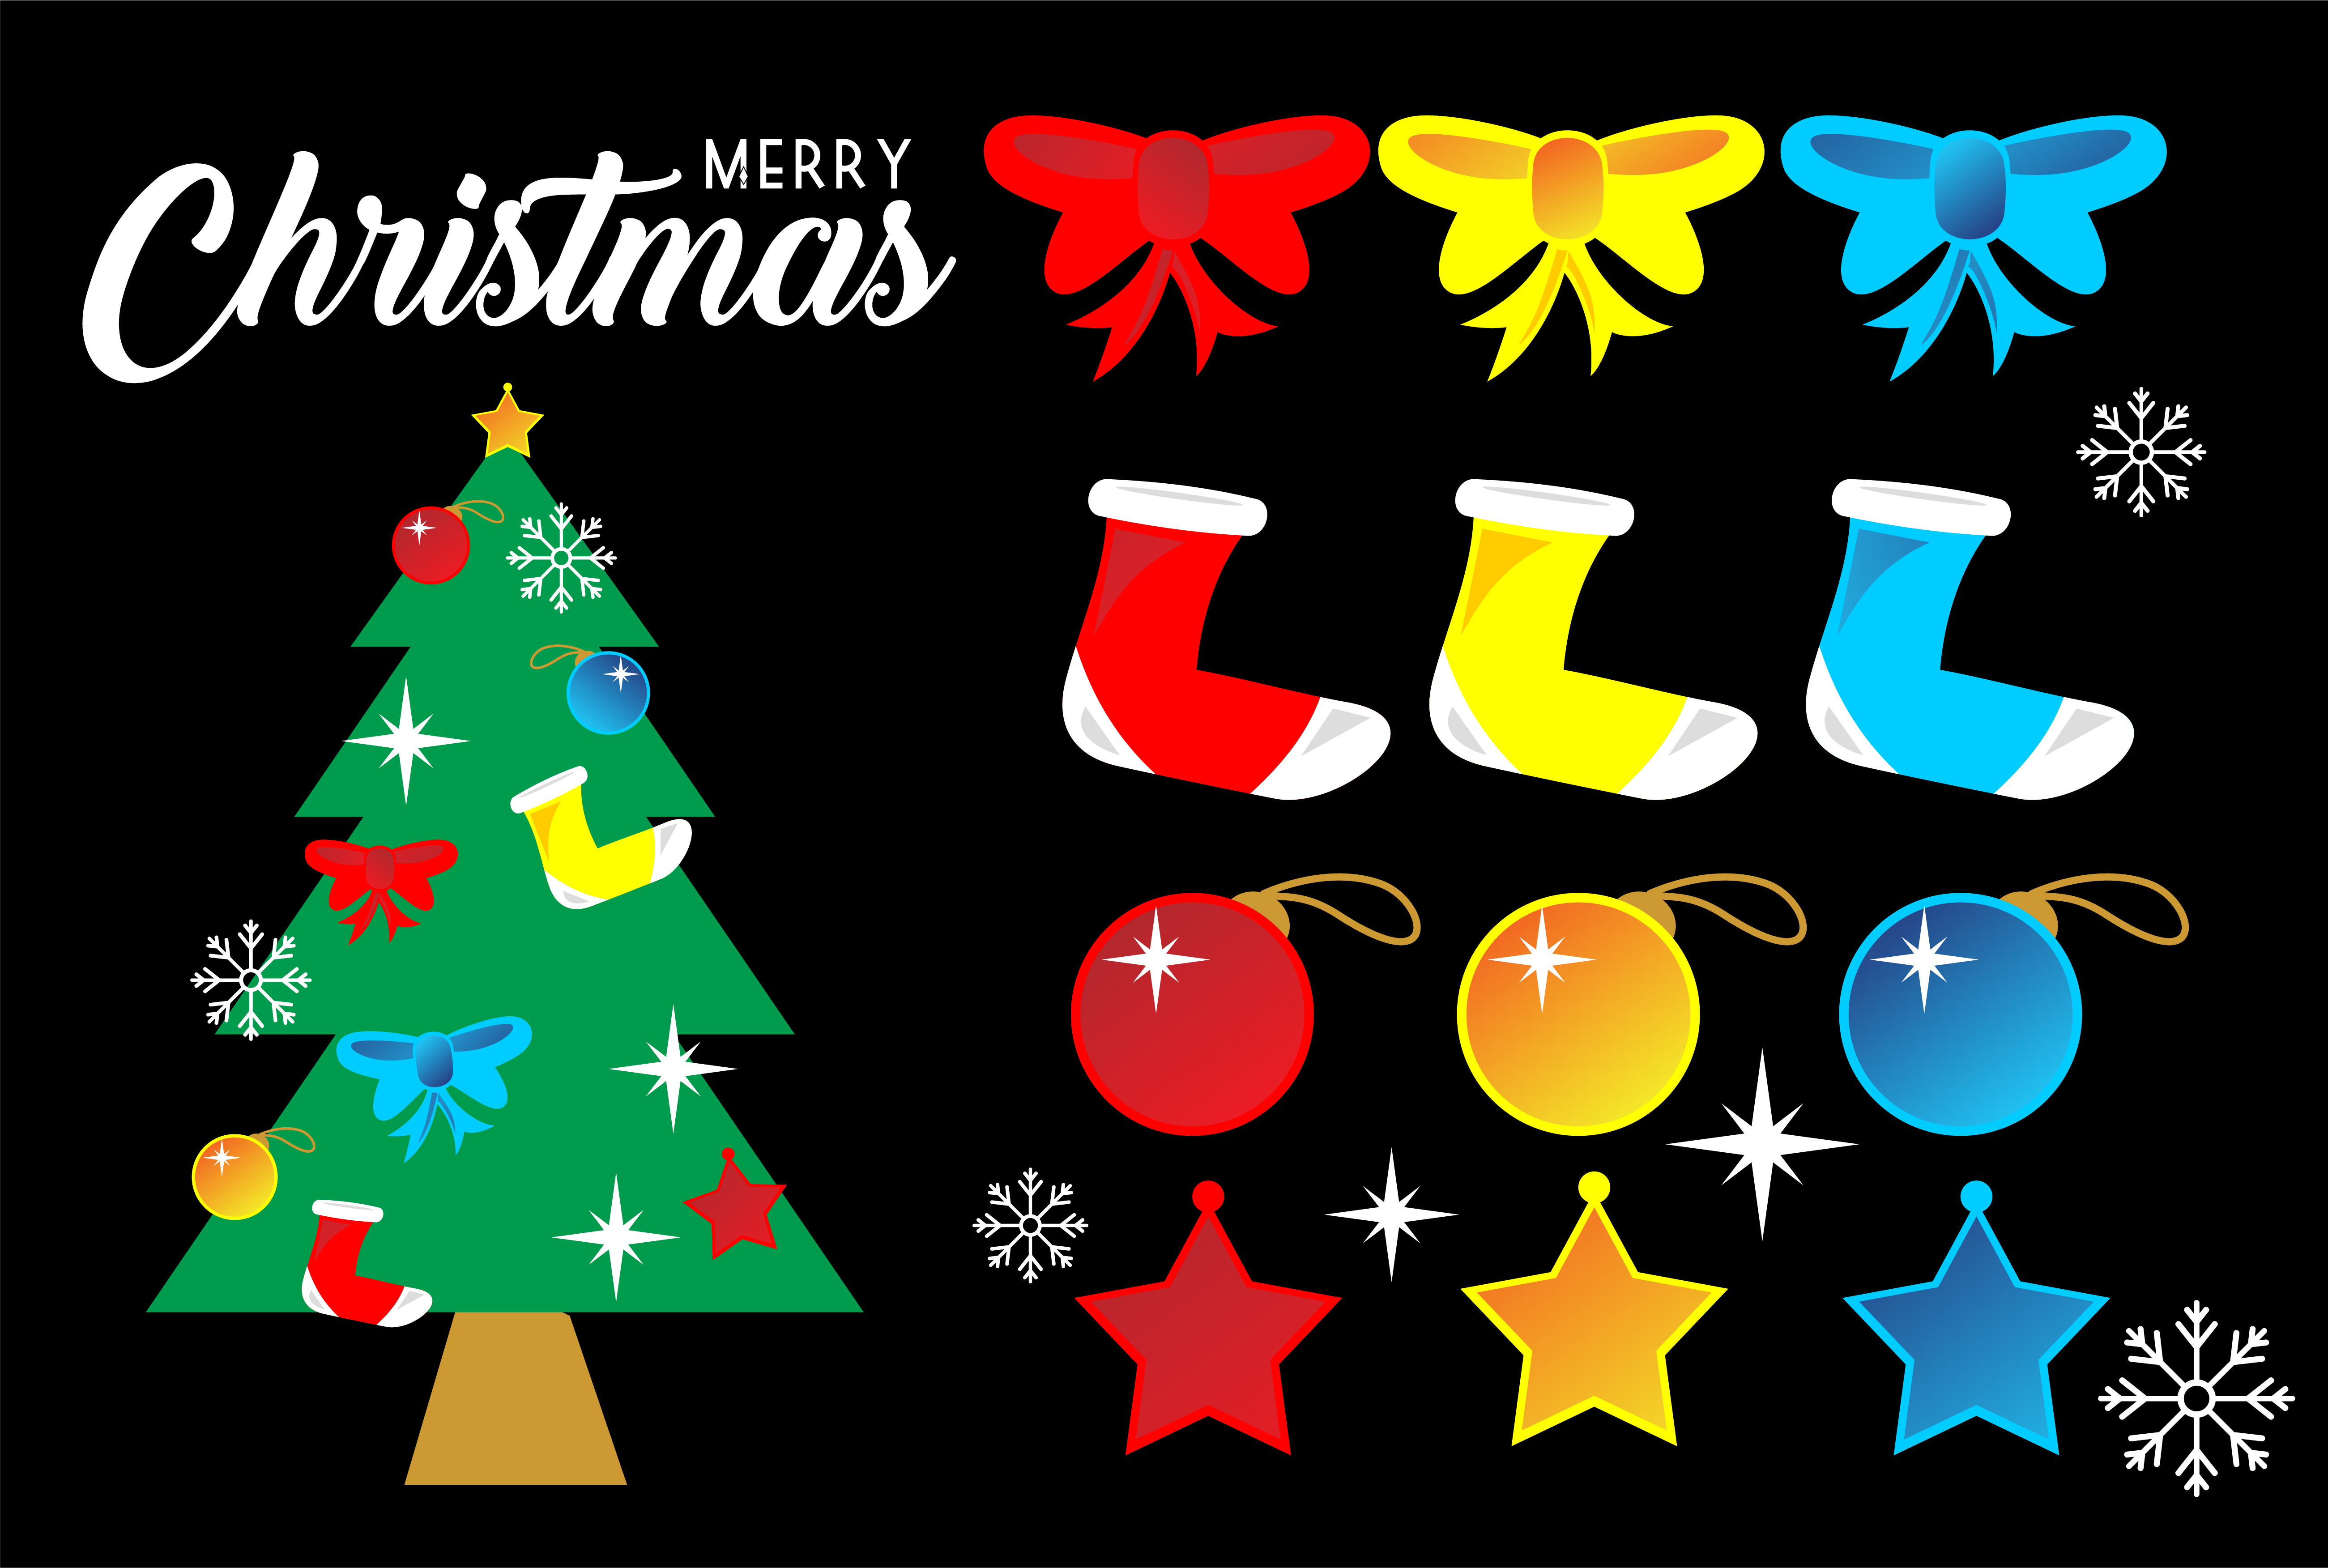 Download Free Christmas Atribute Religion Logo Graphic By Deemka Studio for Cricut Explore, Silhouette and other cutting machines.